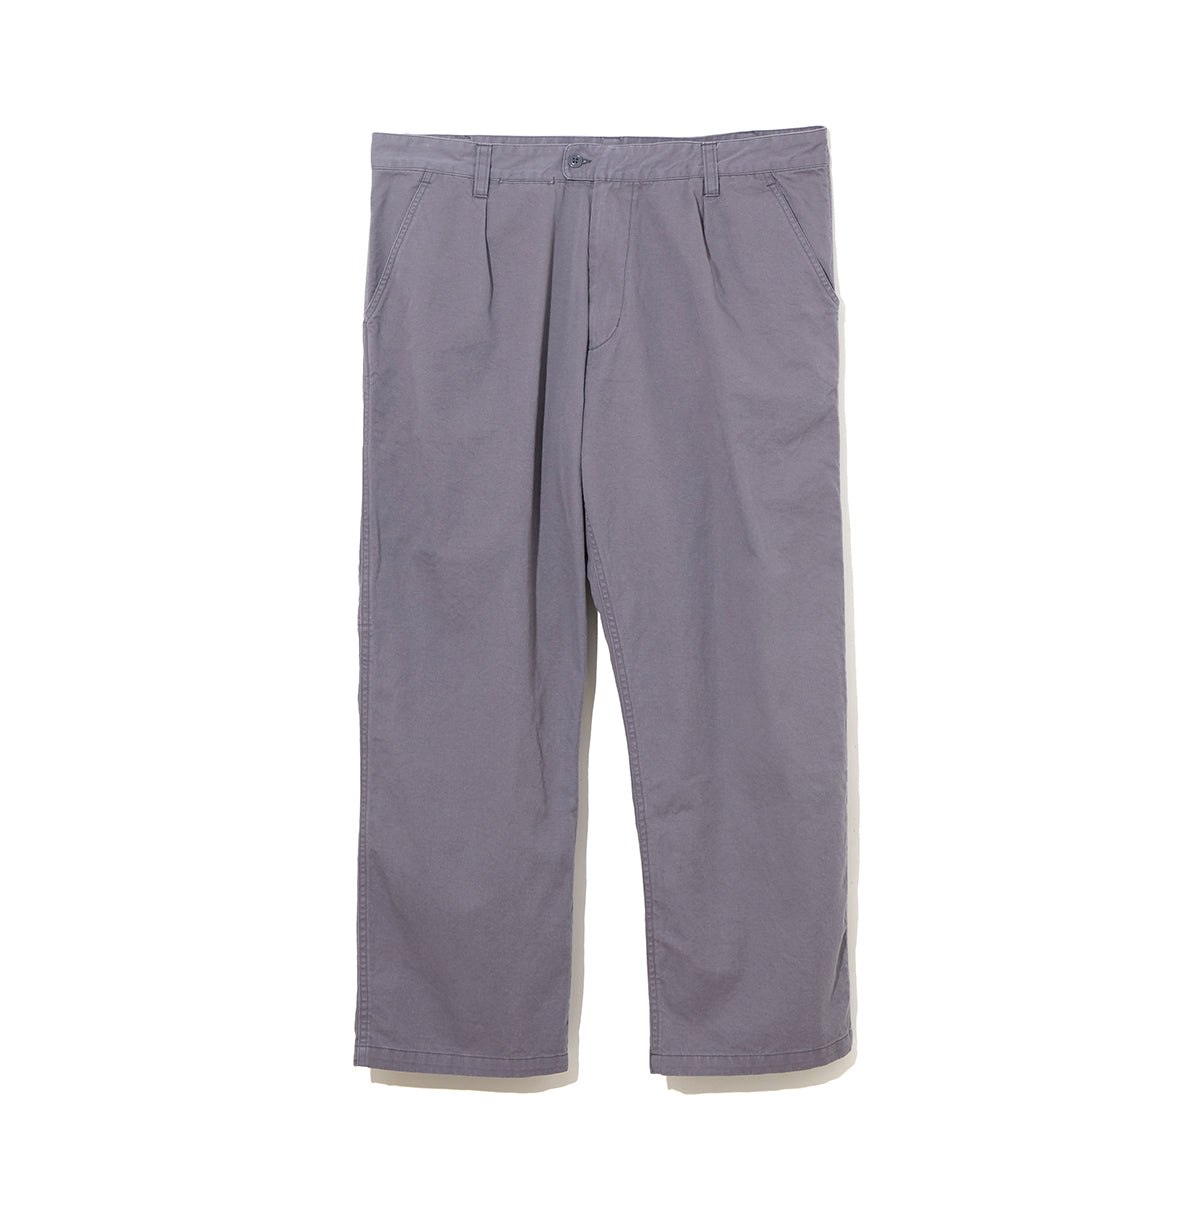 Work Pants / GRAY (20S-NSA-PT-05)